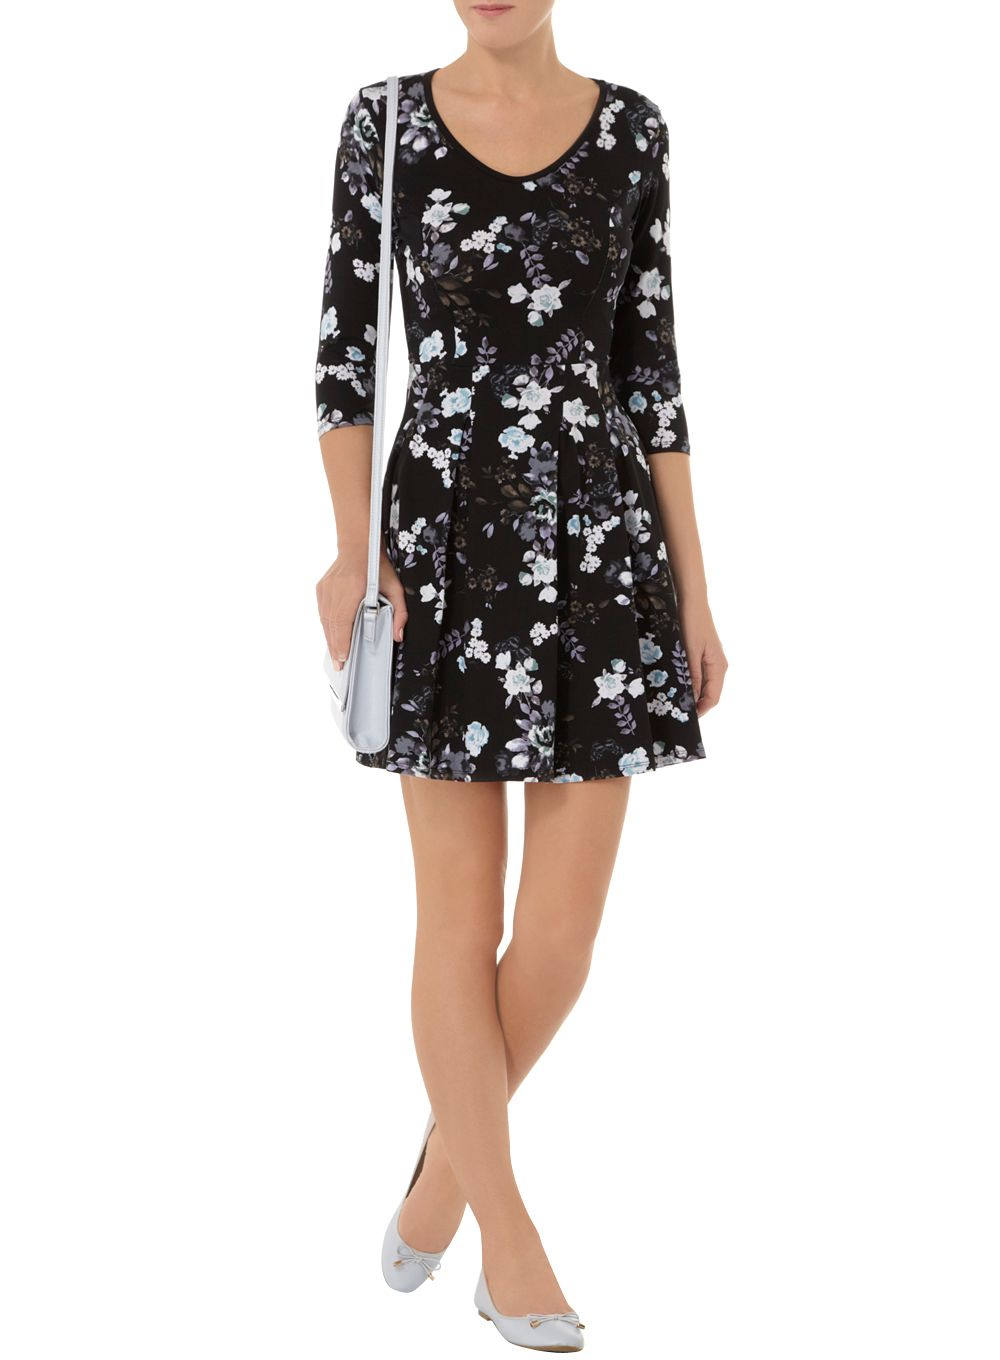 Floral 3/4 Sleeve Print Dress